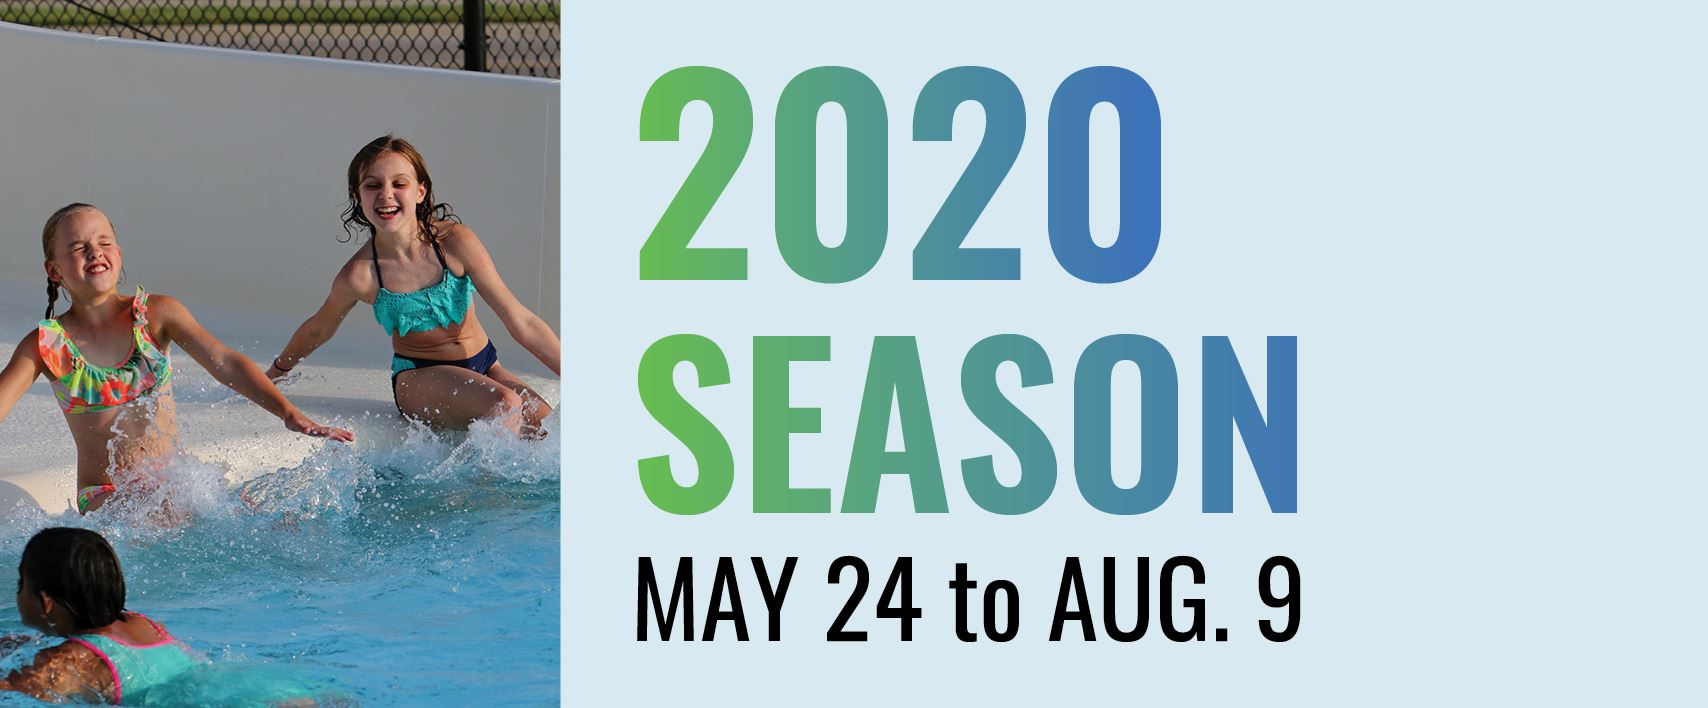 2020 season May 24 to Aug. 9